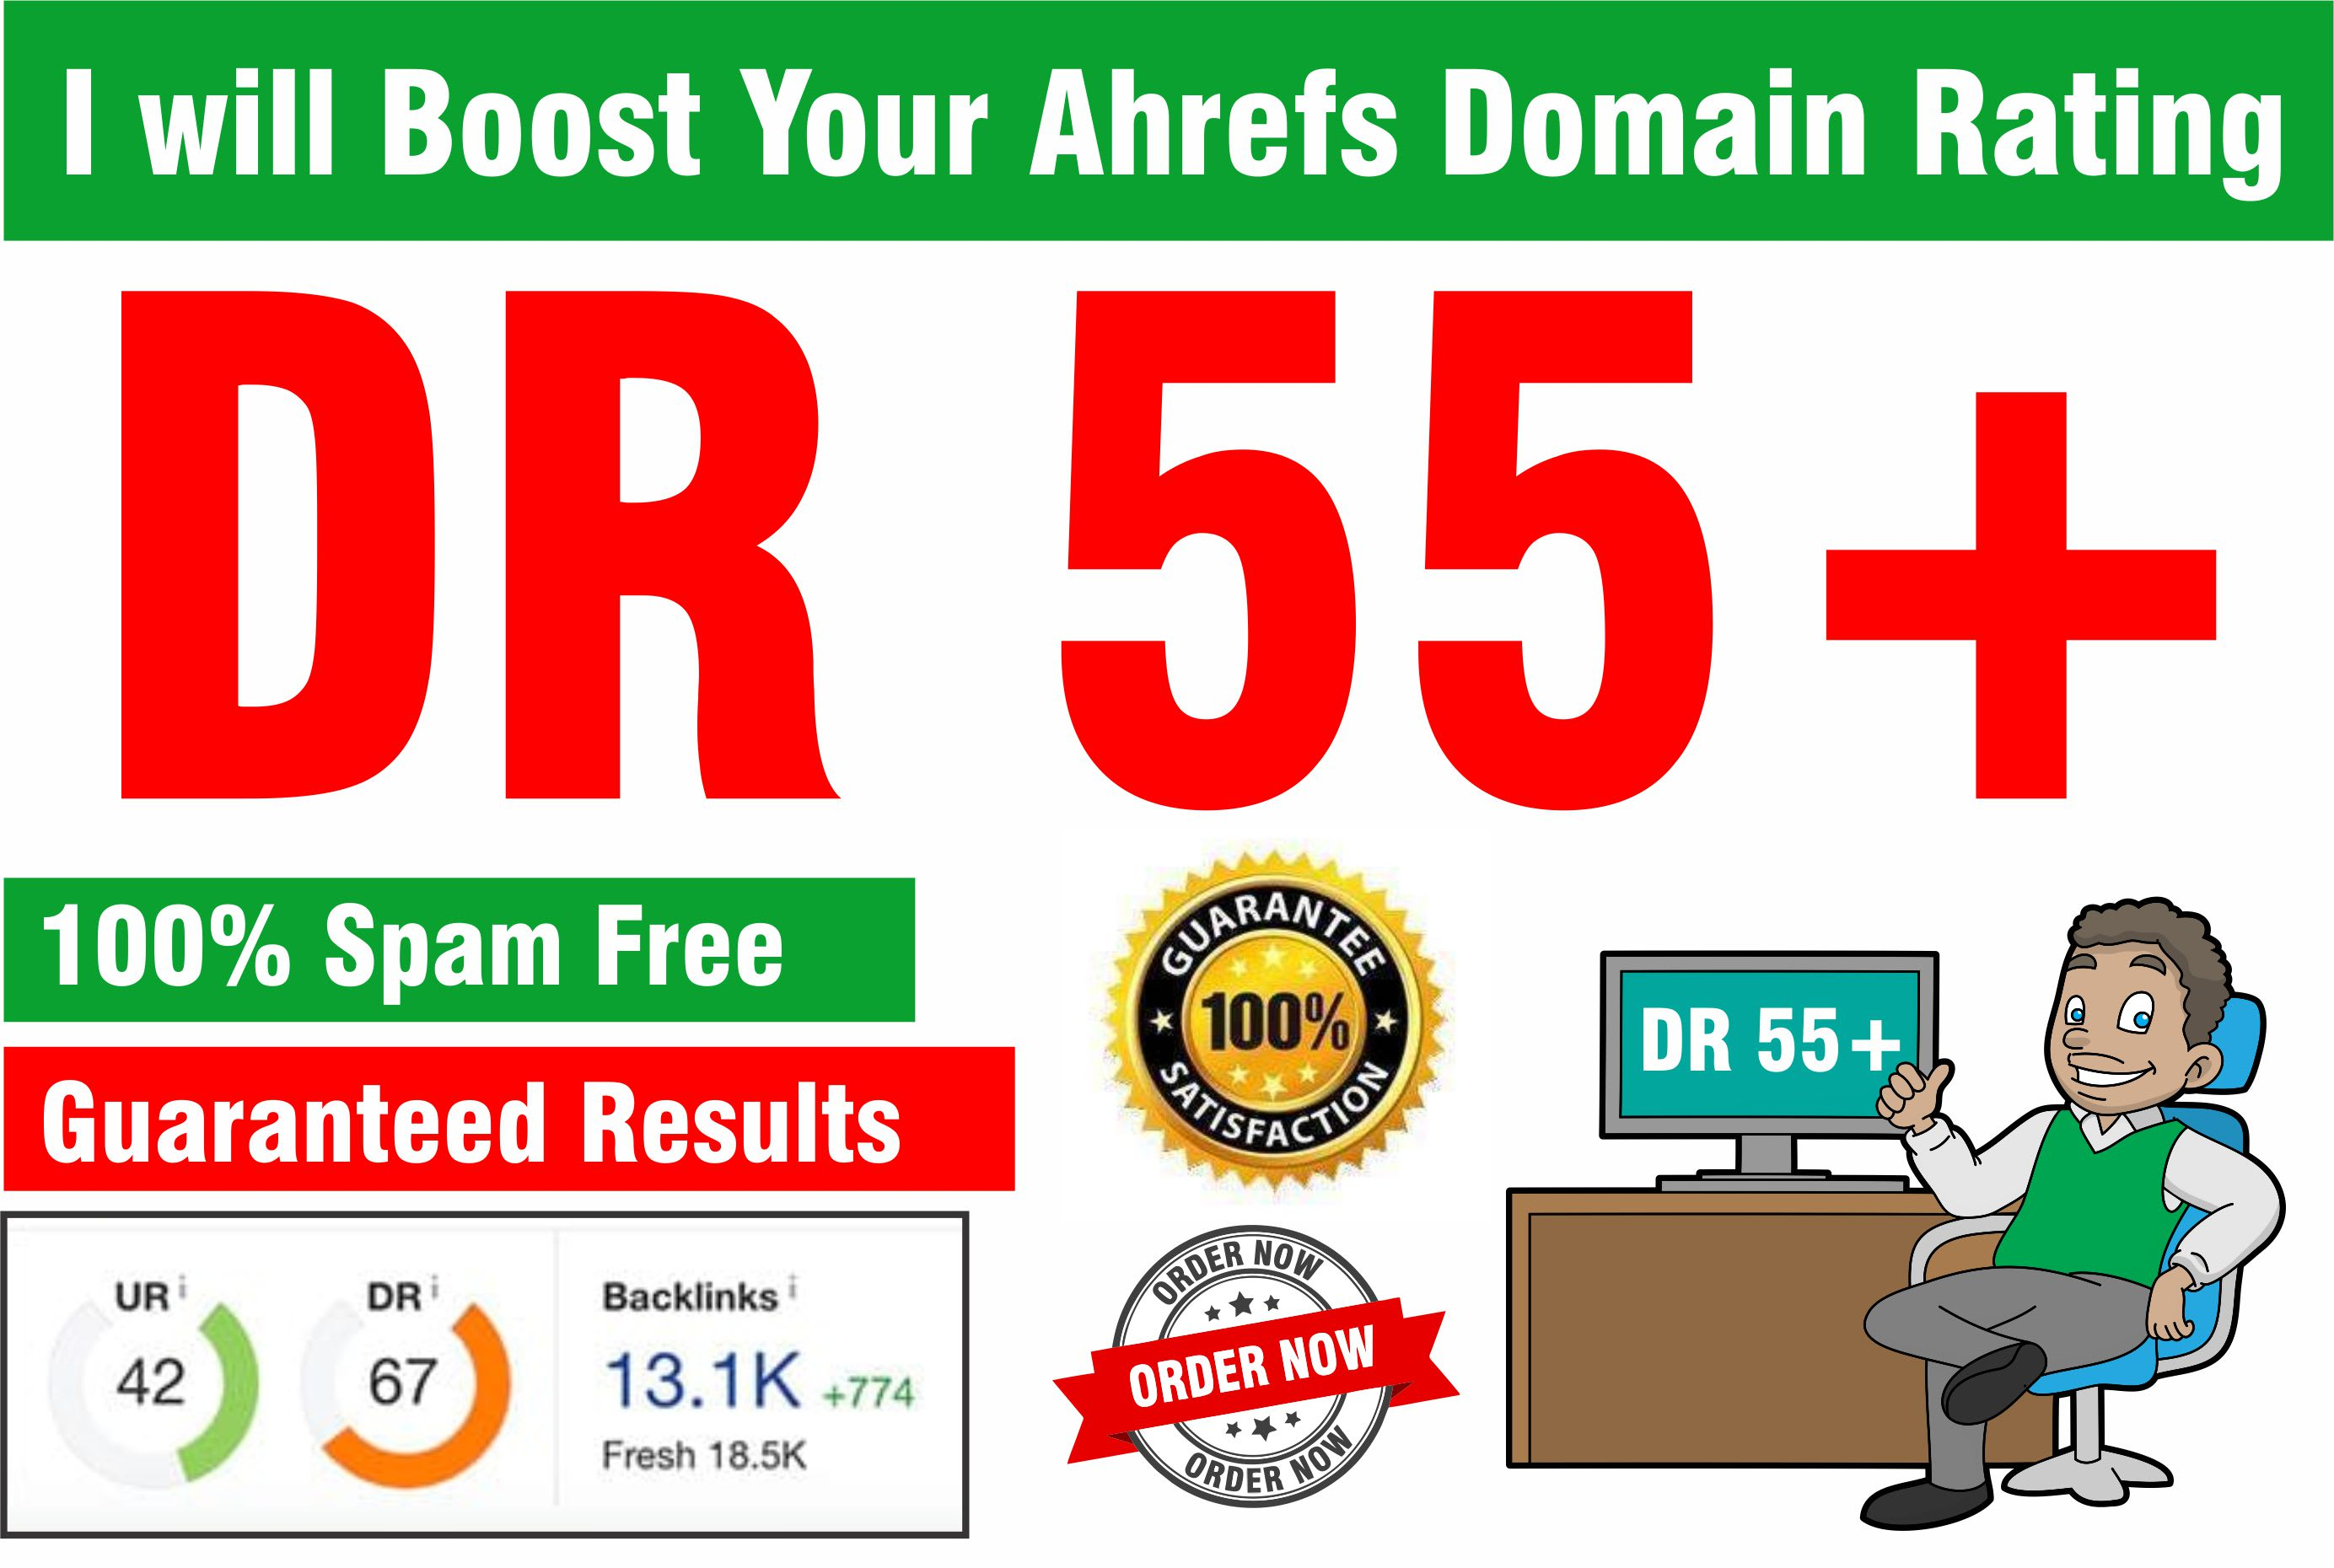 I will increase da dr moz domain authority and ahref domain rating